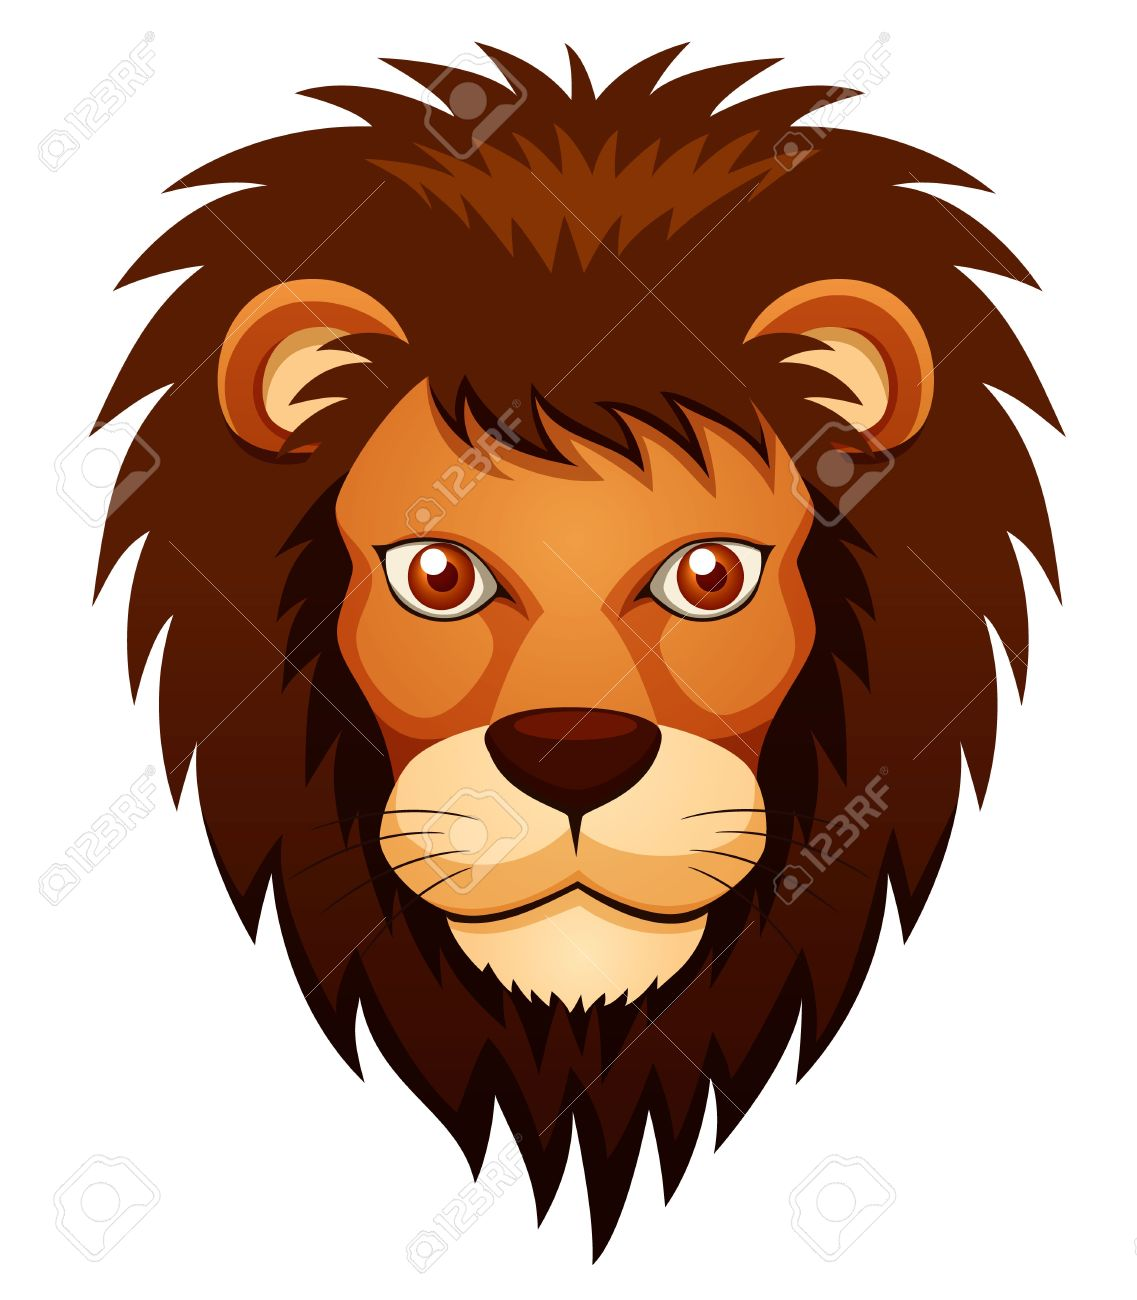 illustration of lion face royalty free cliparts vectors and